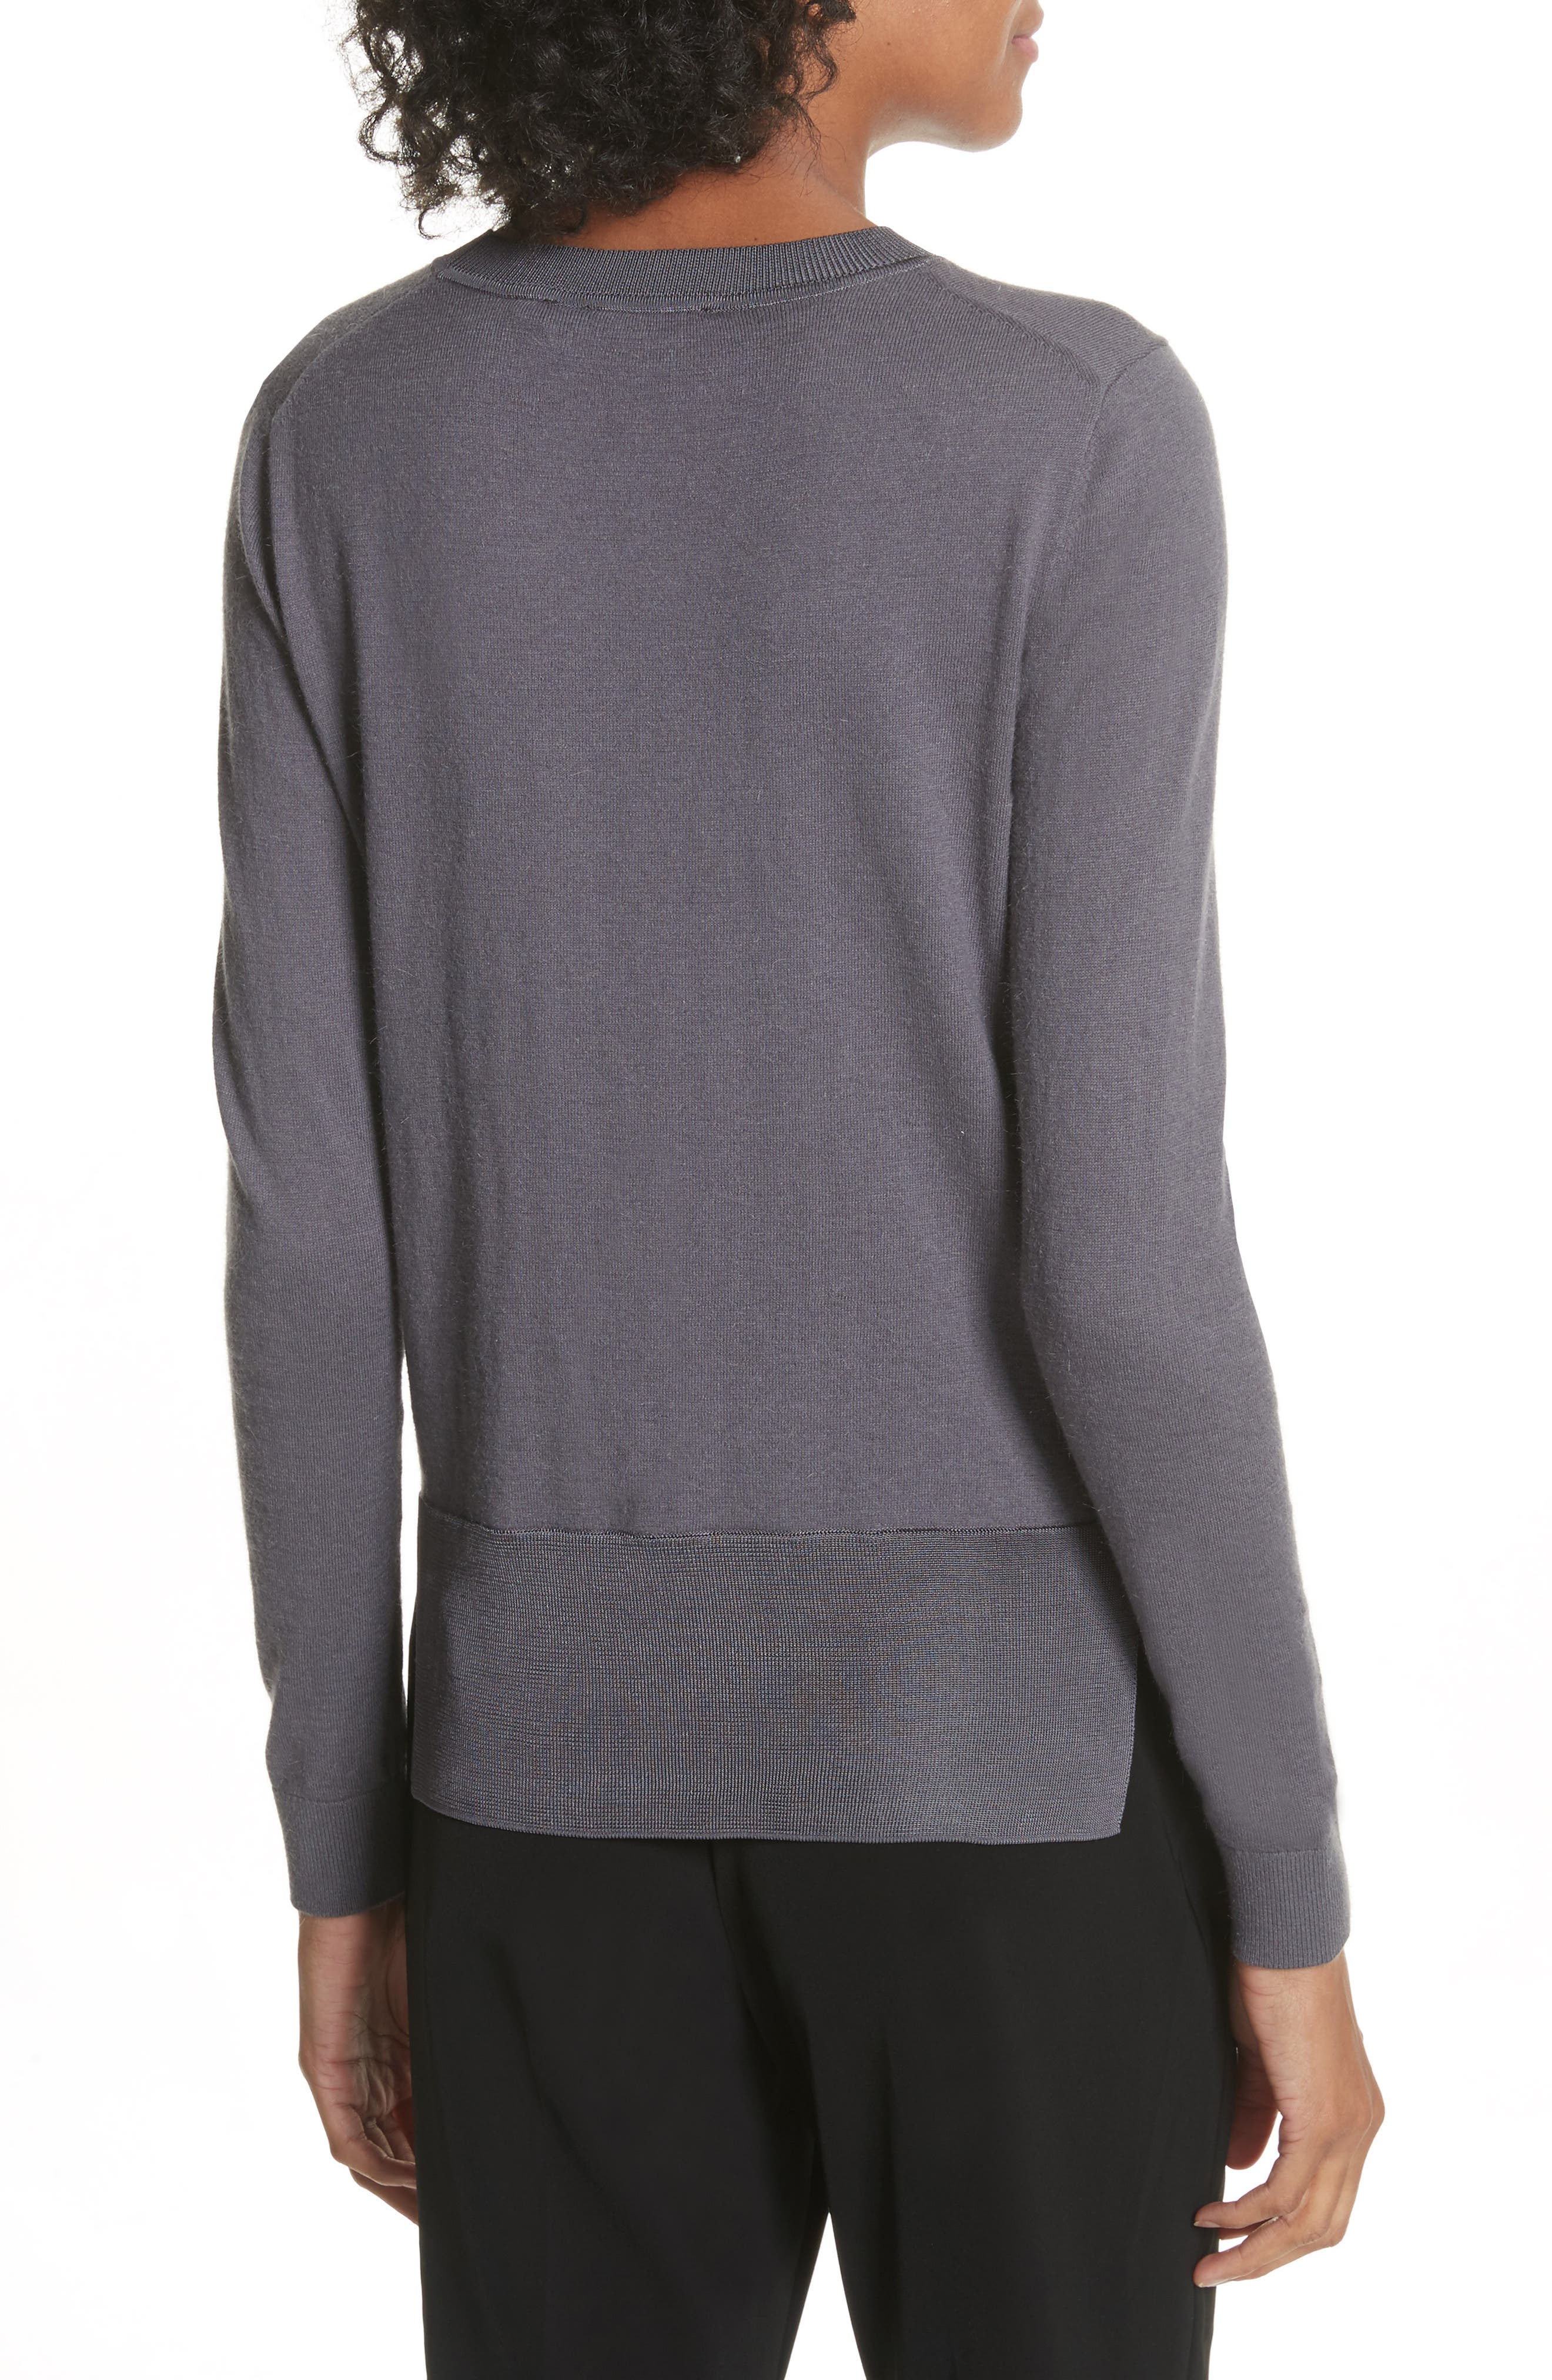 Chatswoth Woven Front Sweater,                             Alternate thumbnail 2, color,                             030